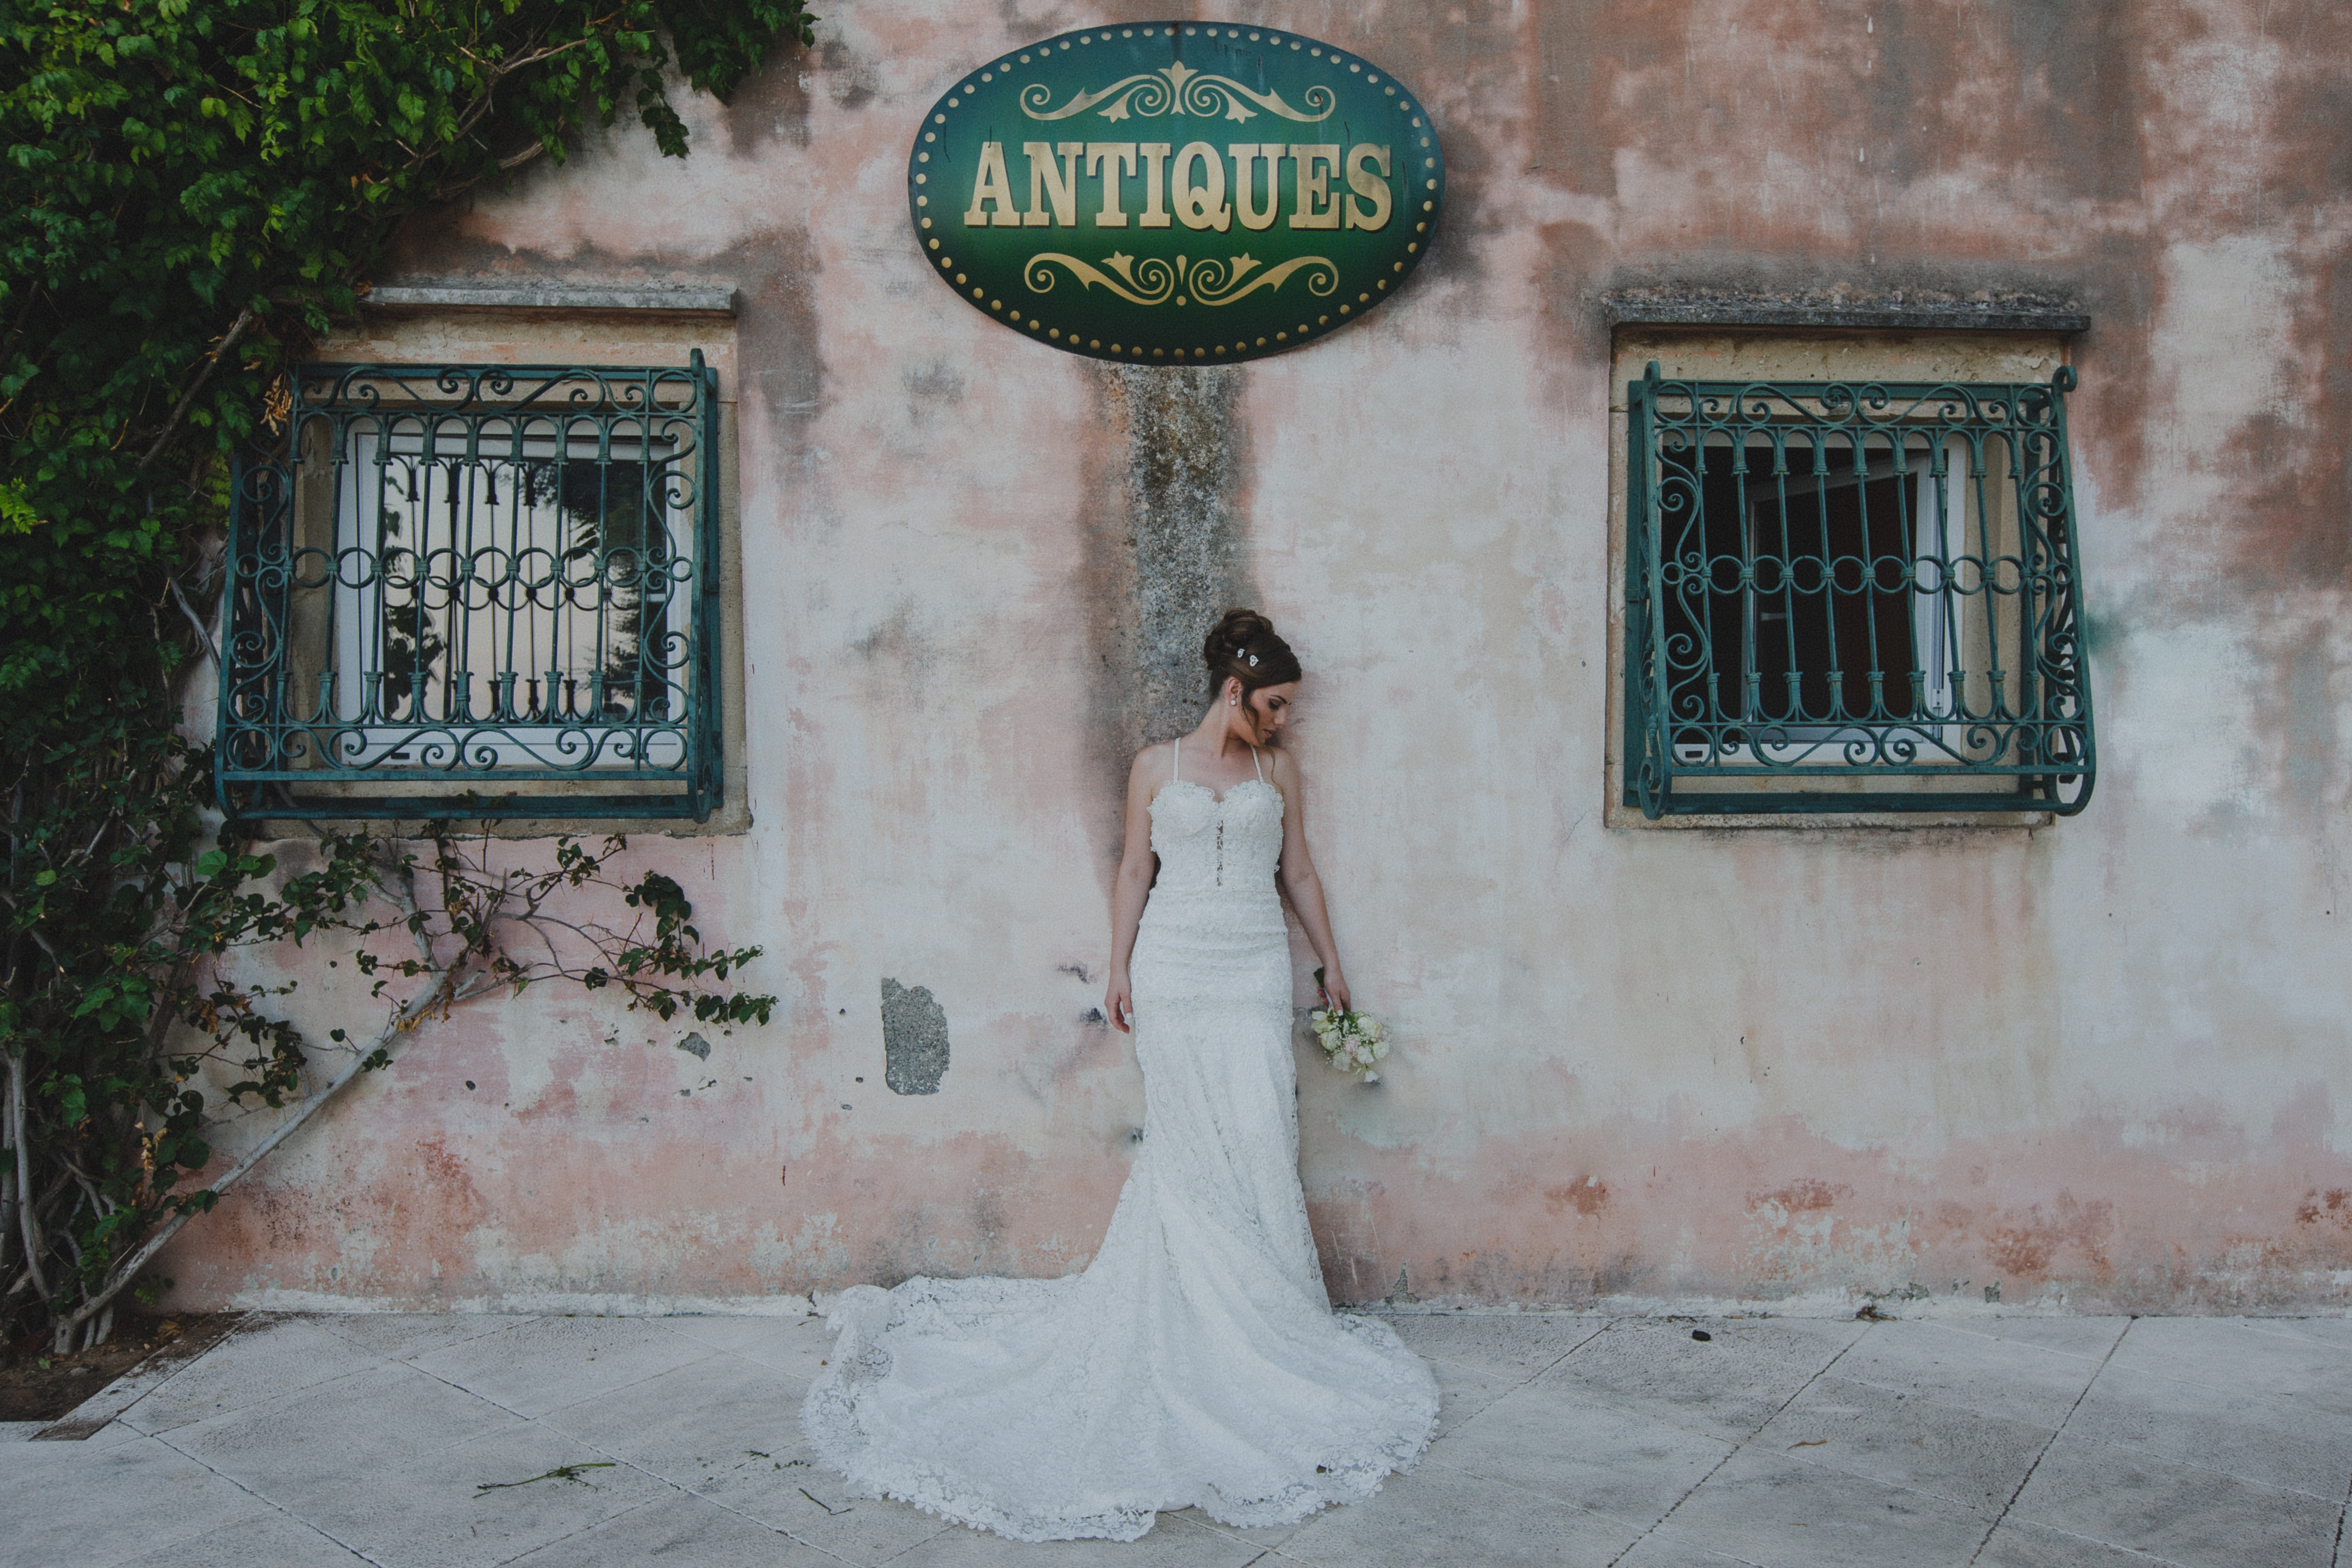 woman wearing wedding gown standing near wall holding flowers